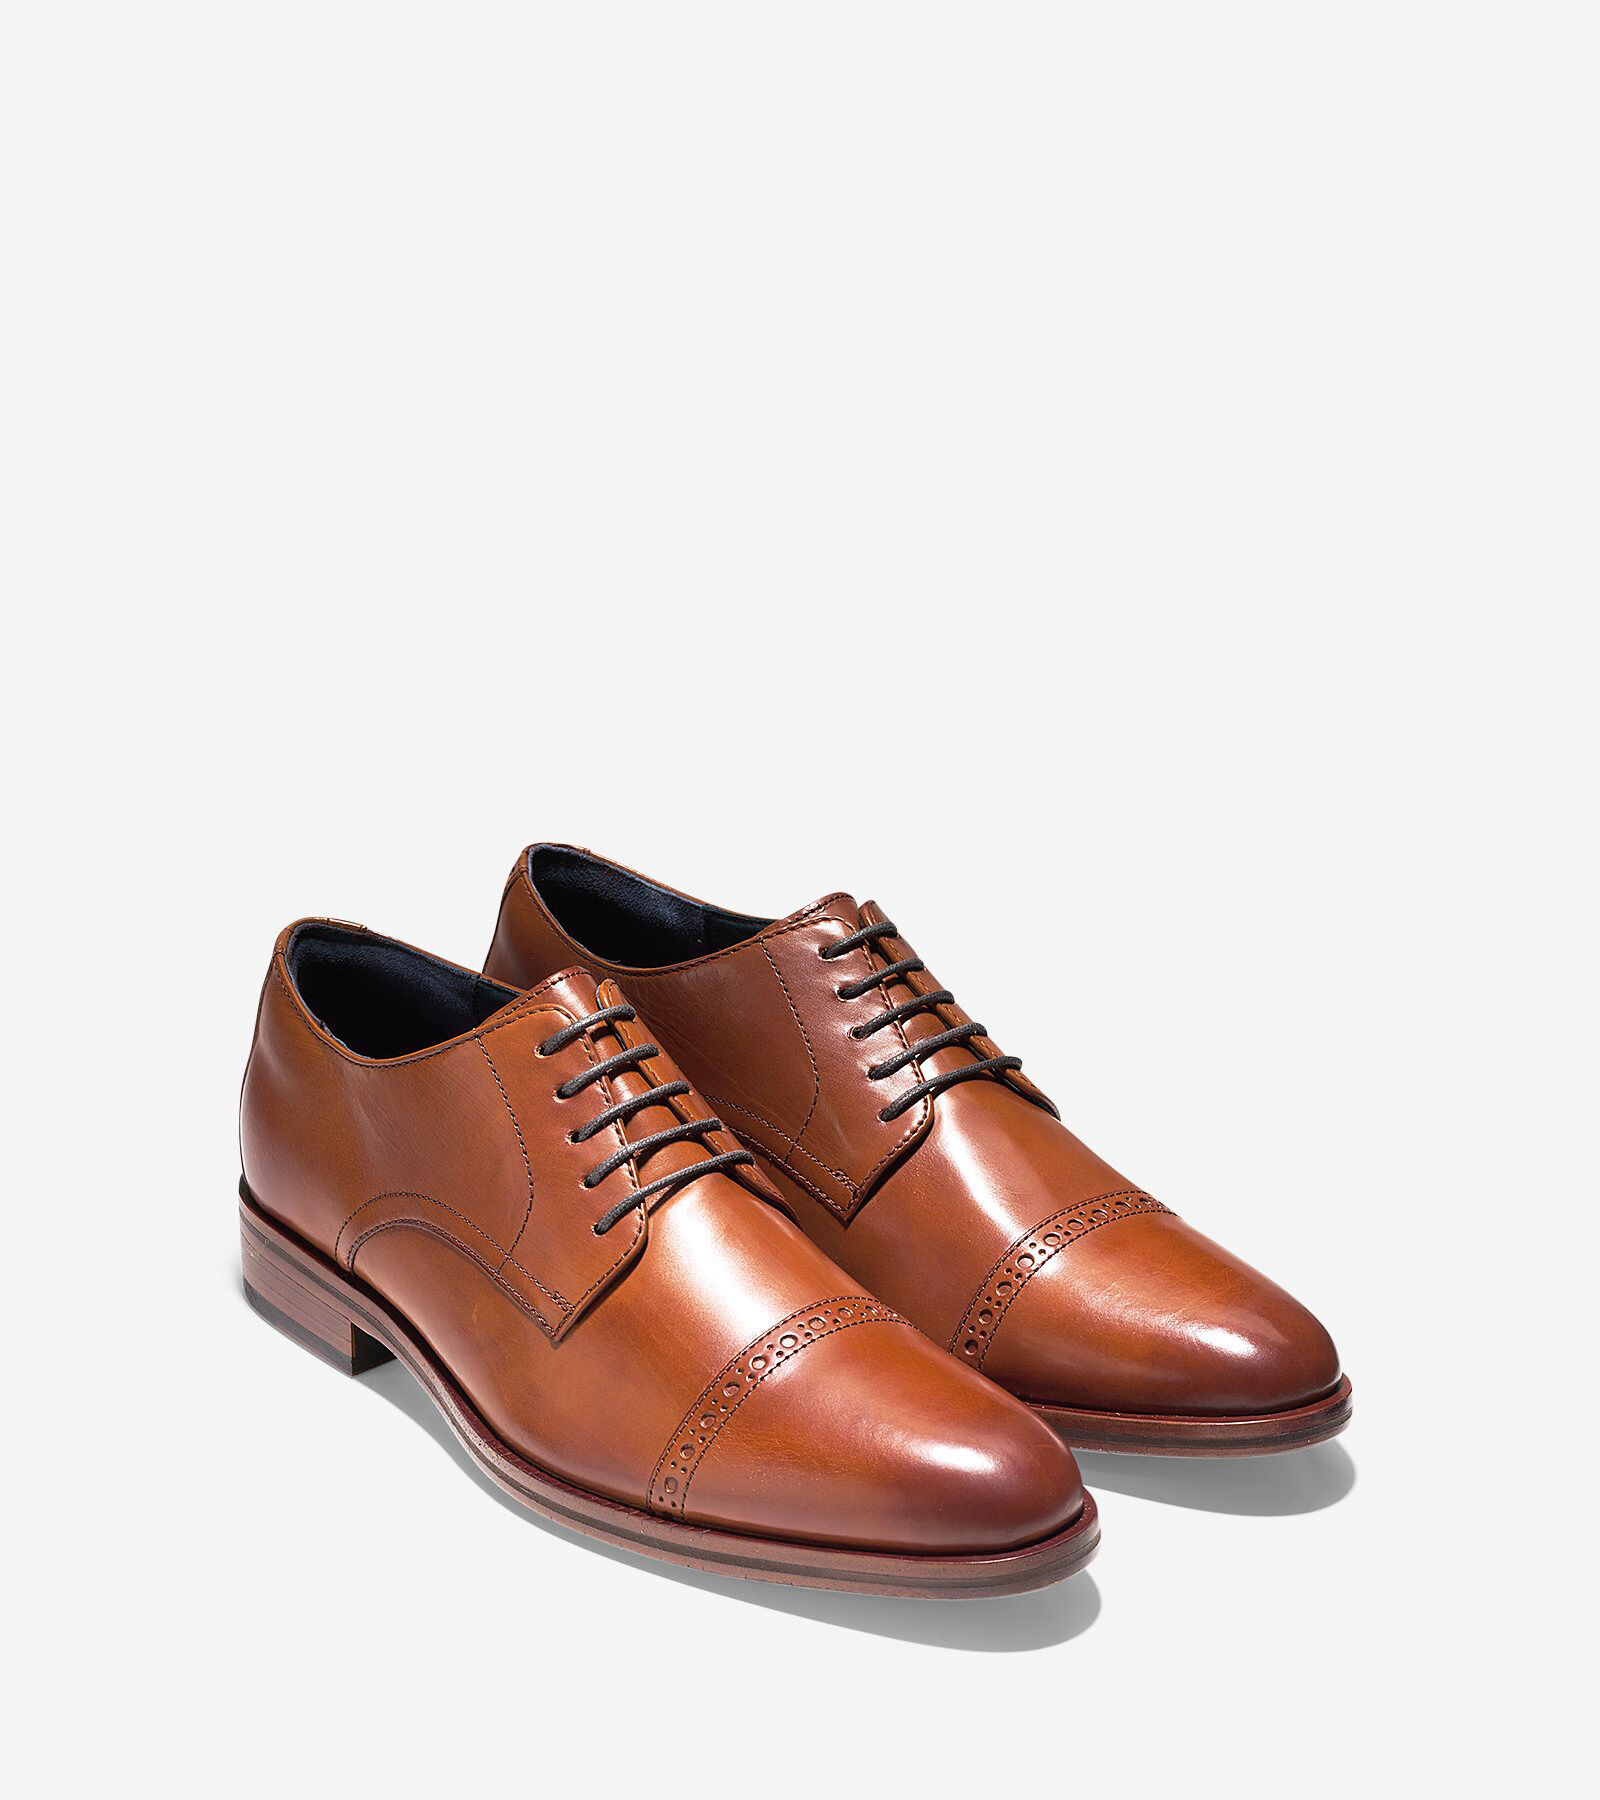 Cole HaanMen's Washington Grand Plain Toe Oxford juyVREwq